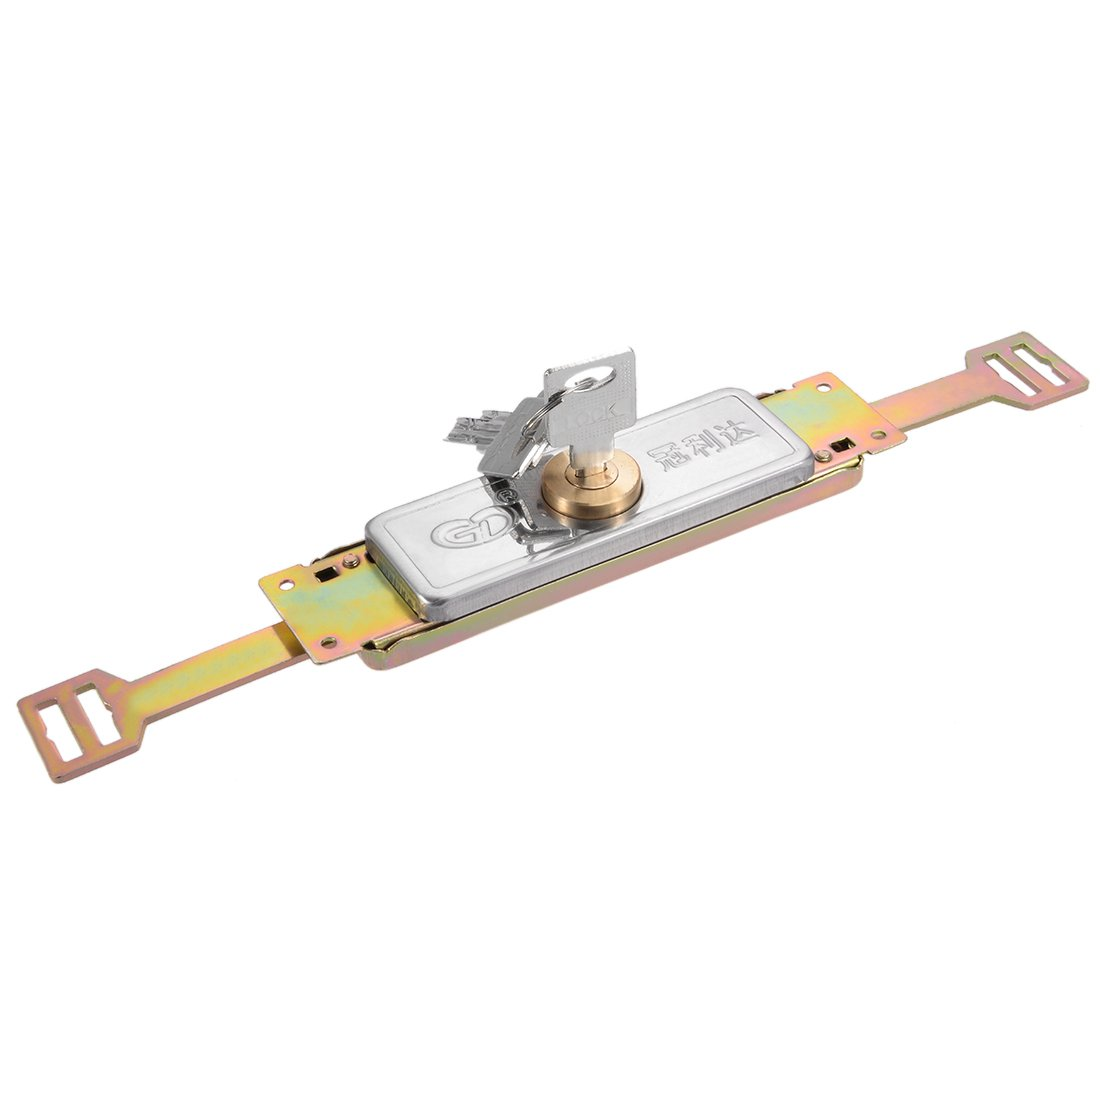 uxcell 302mm Locked Length Cylinder Moon Key Type Safety Rolling Shutter Door Lock